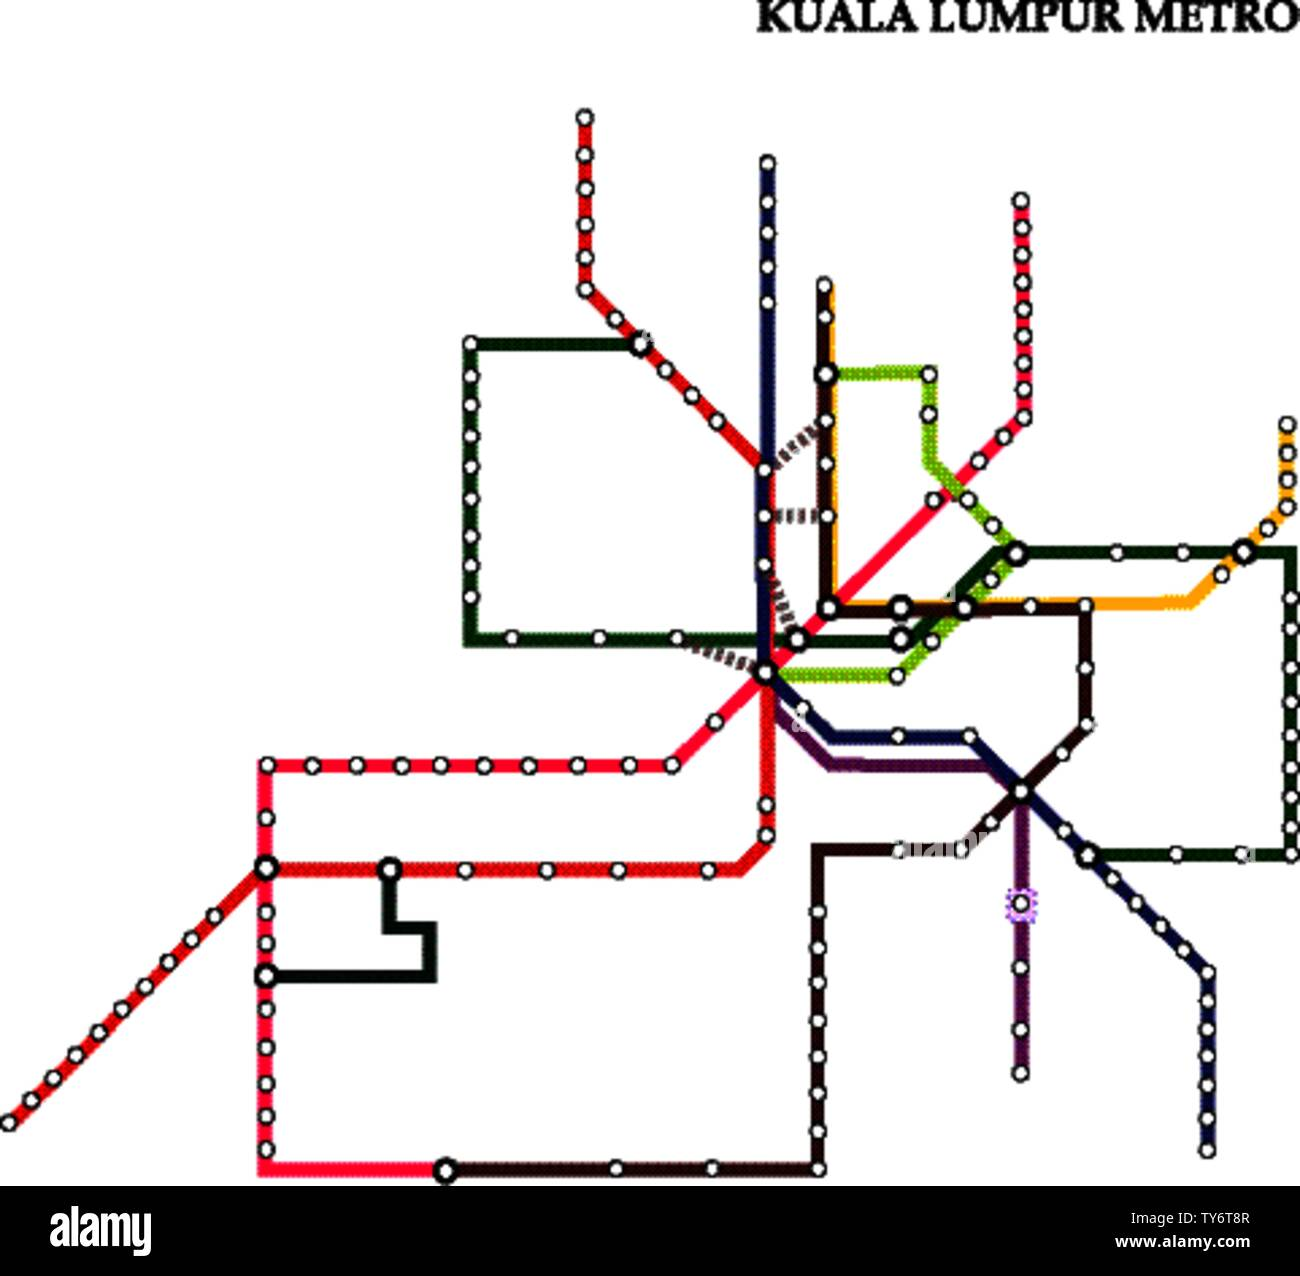 Map of the Kuala Lumpur metro, Subway, Template of city transportation scheme for underground road. Stock Vector